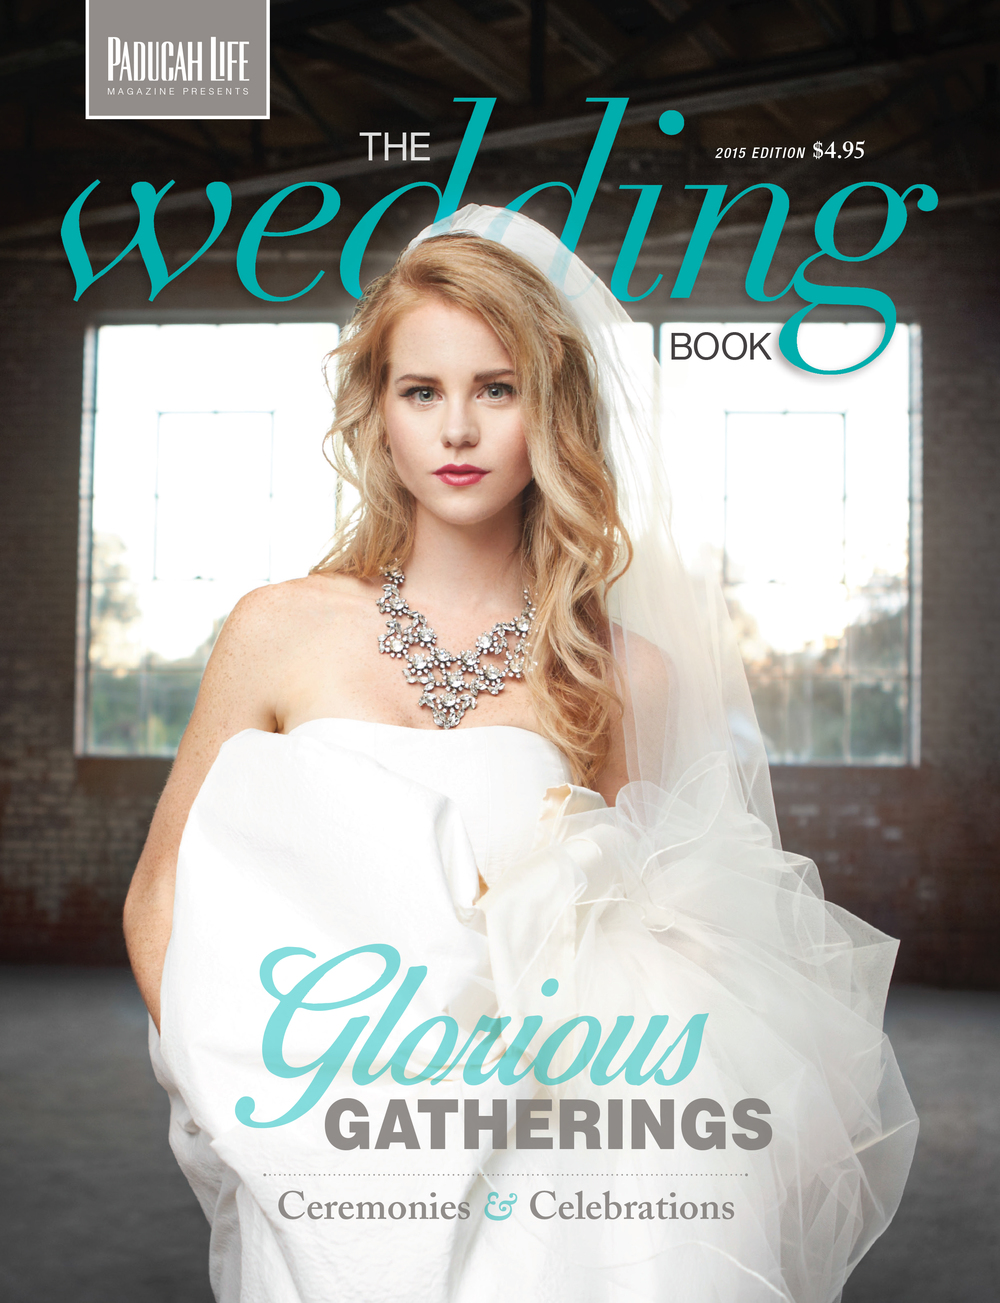 Paducah Life Magazine - The Wedding Book 2015 - Paducah Kentucky